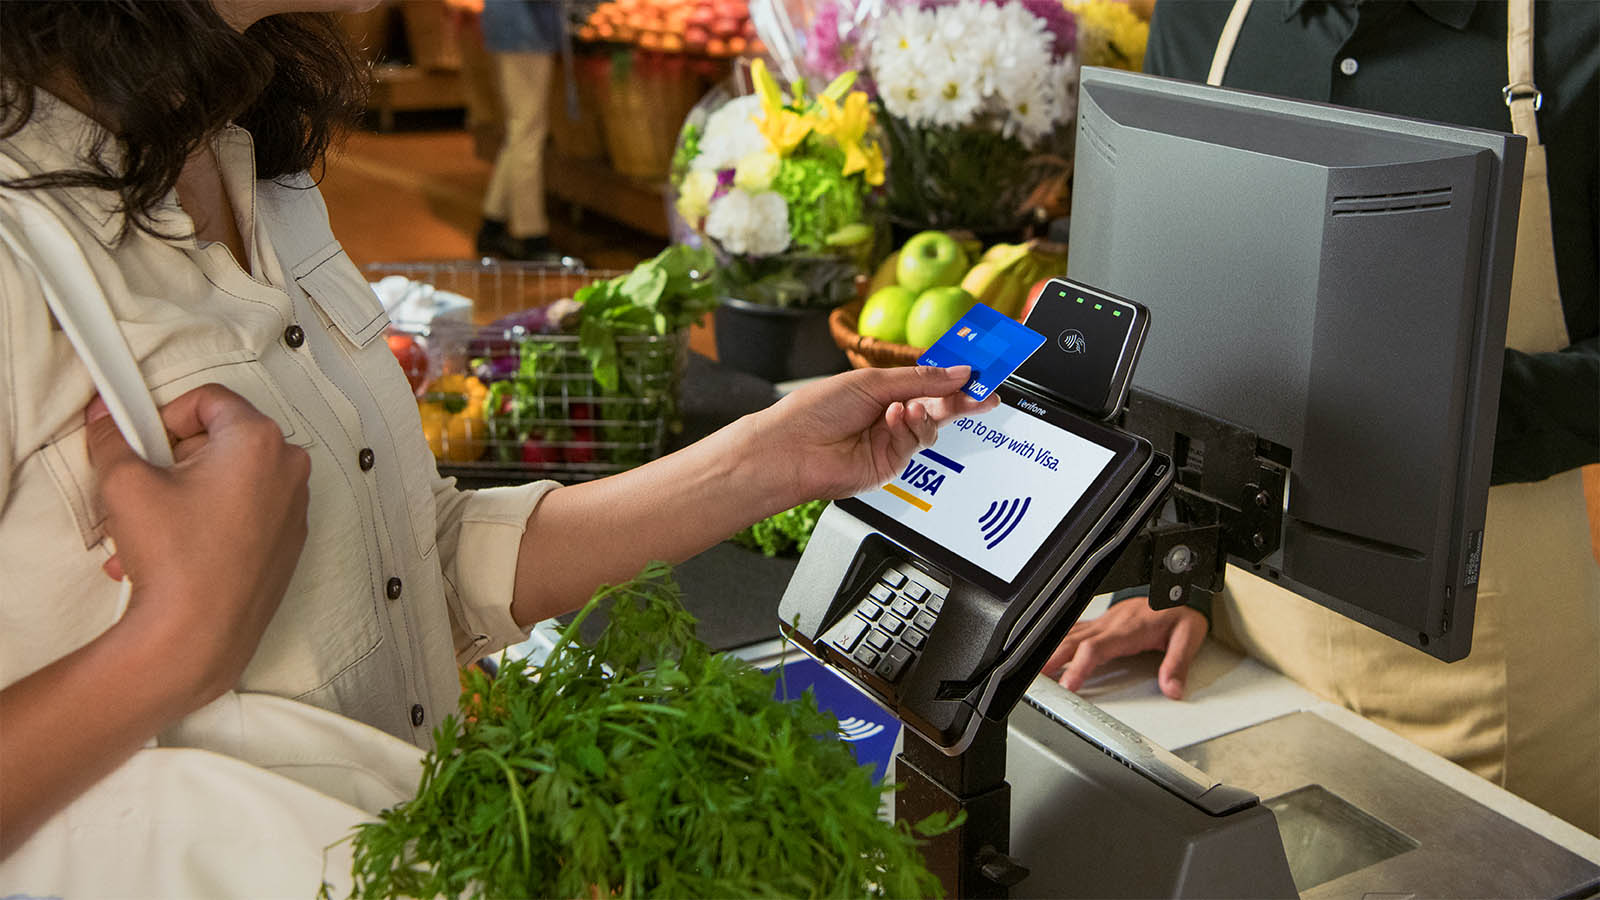 Woman tapping to pay at grocery store with Visa card at a Verifone terminal.